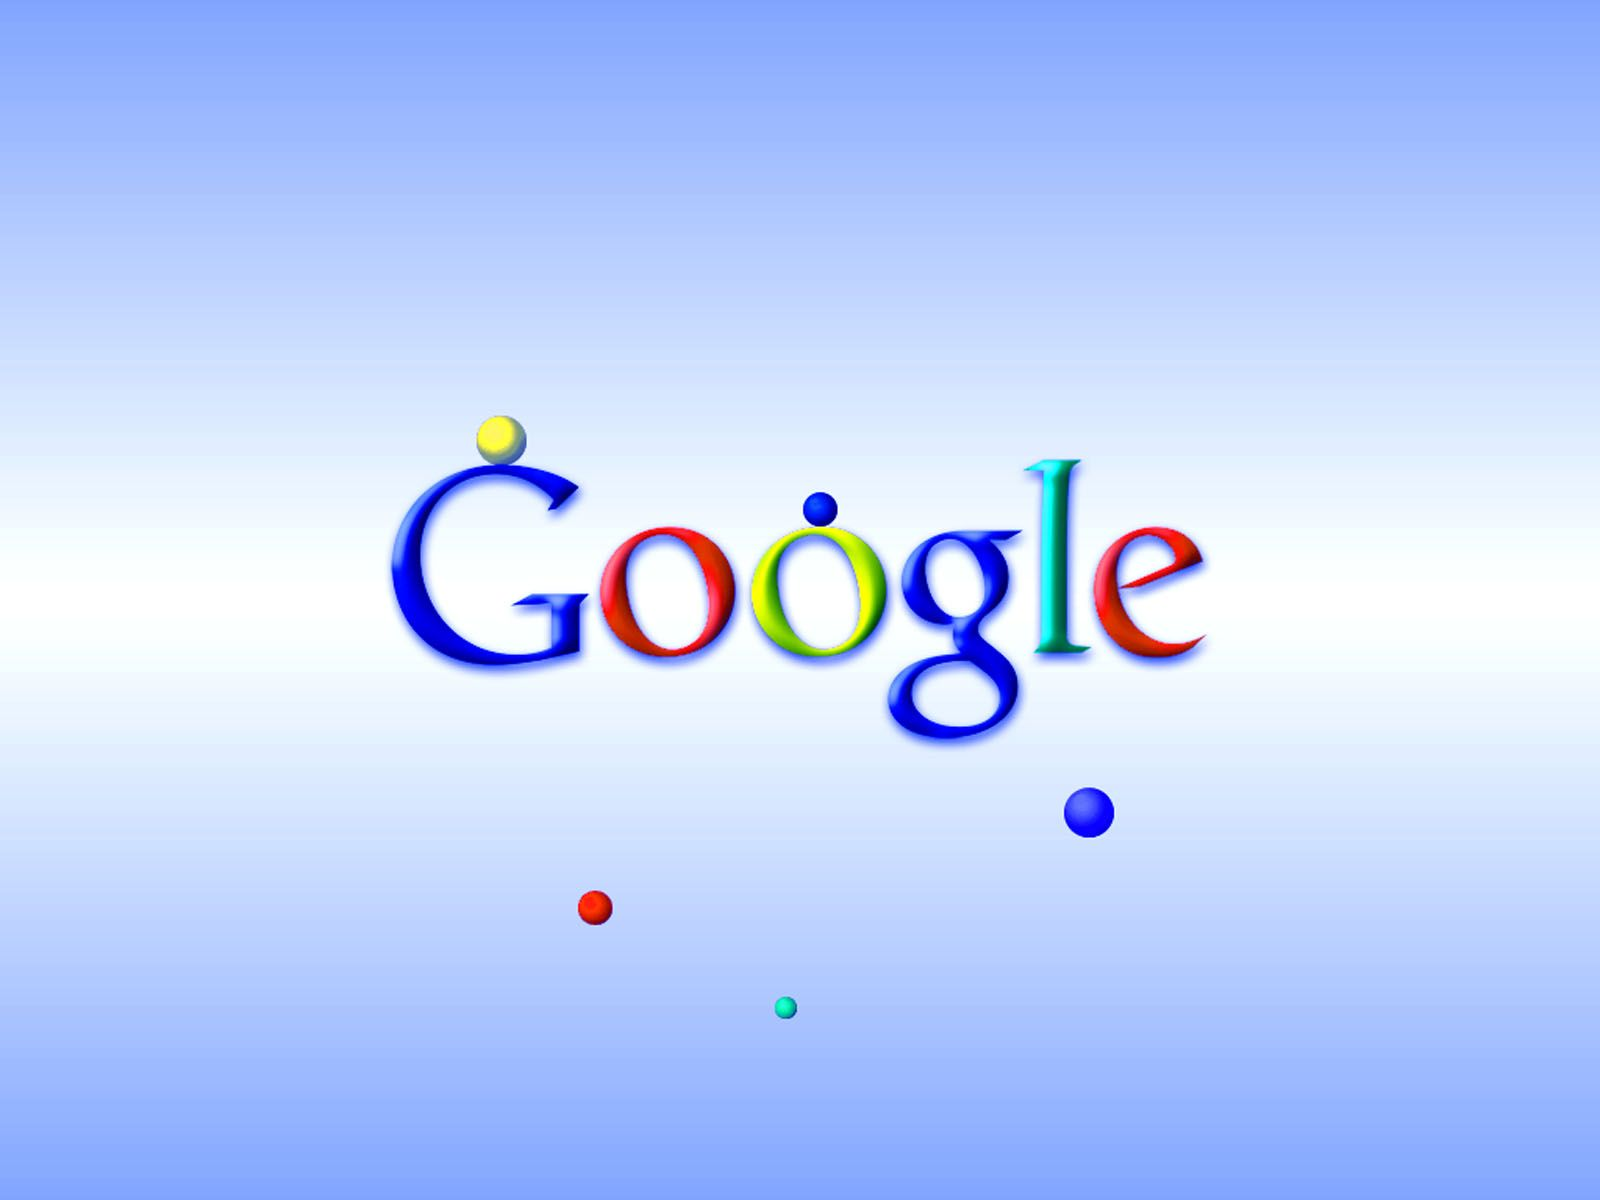 Google Chrome Wallpapers Download Google Chrome HD Wallpapers for